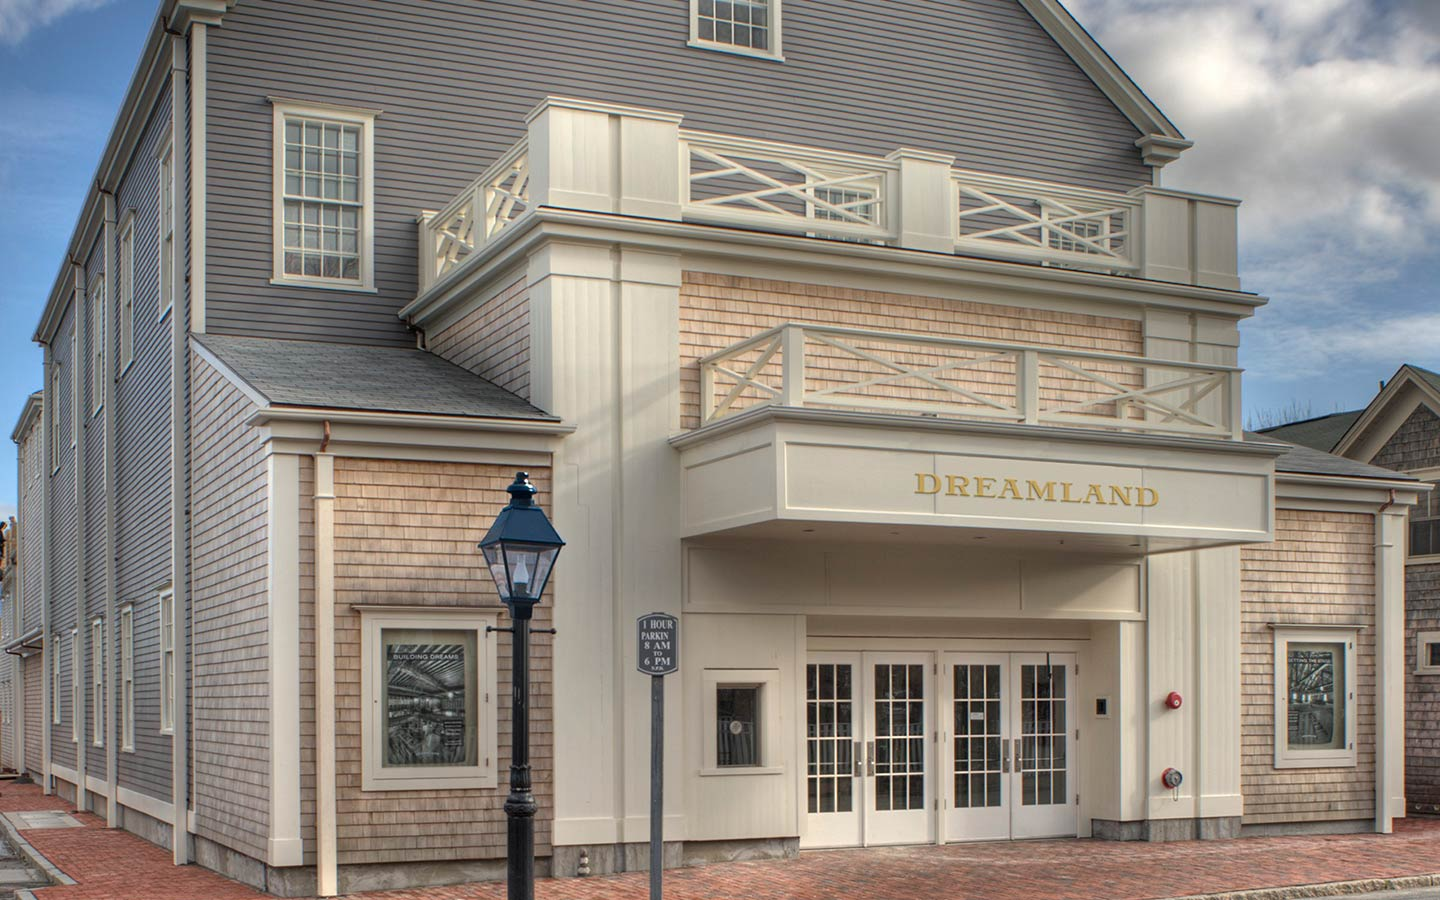 The Dreamland in Nantucket - open since 1911!